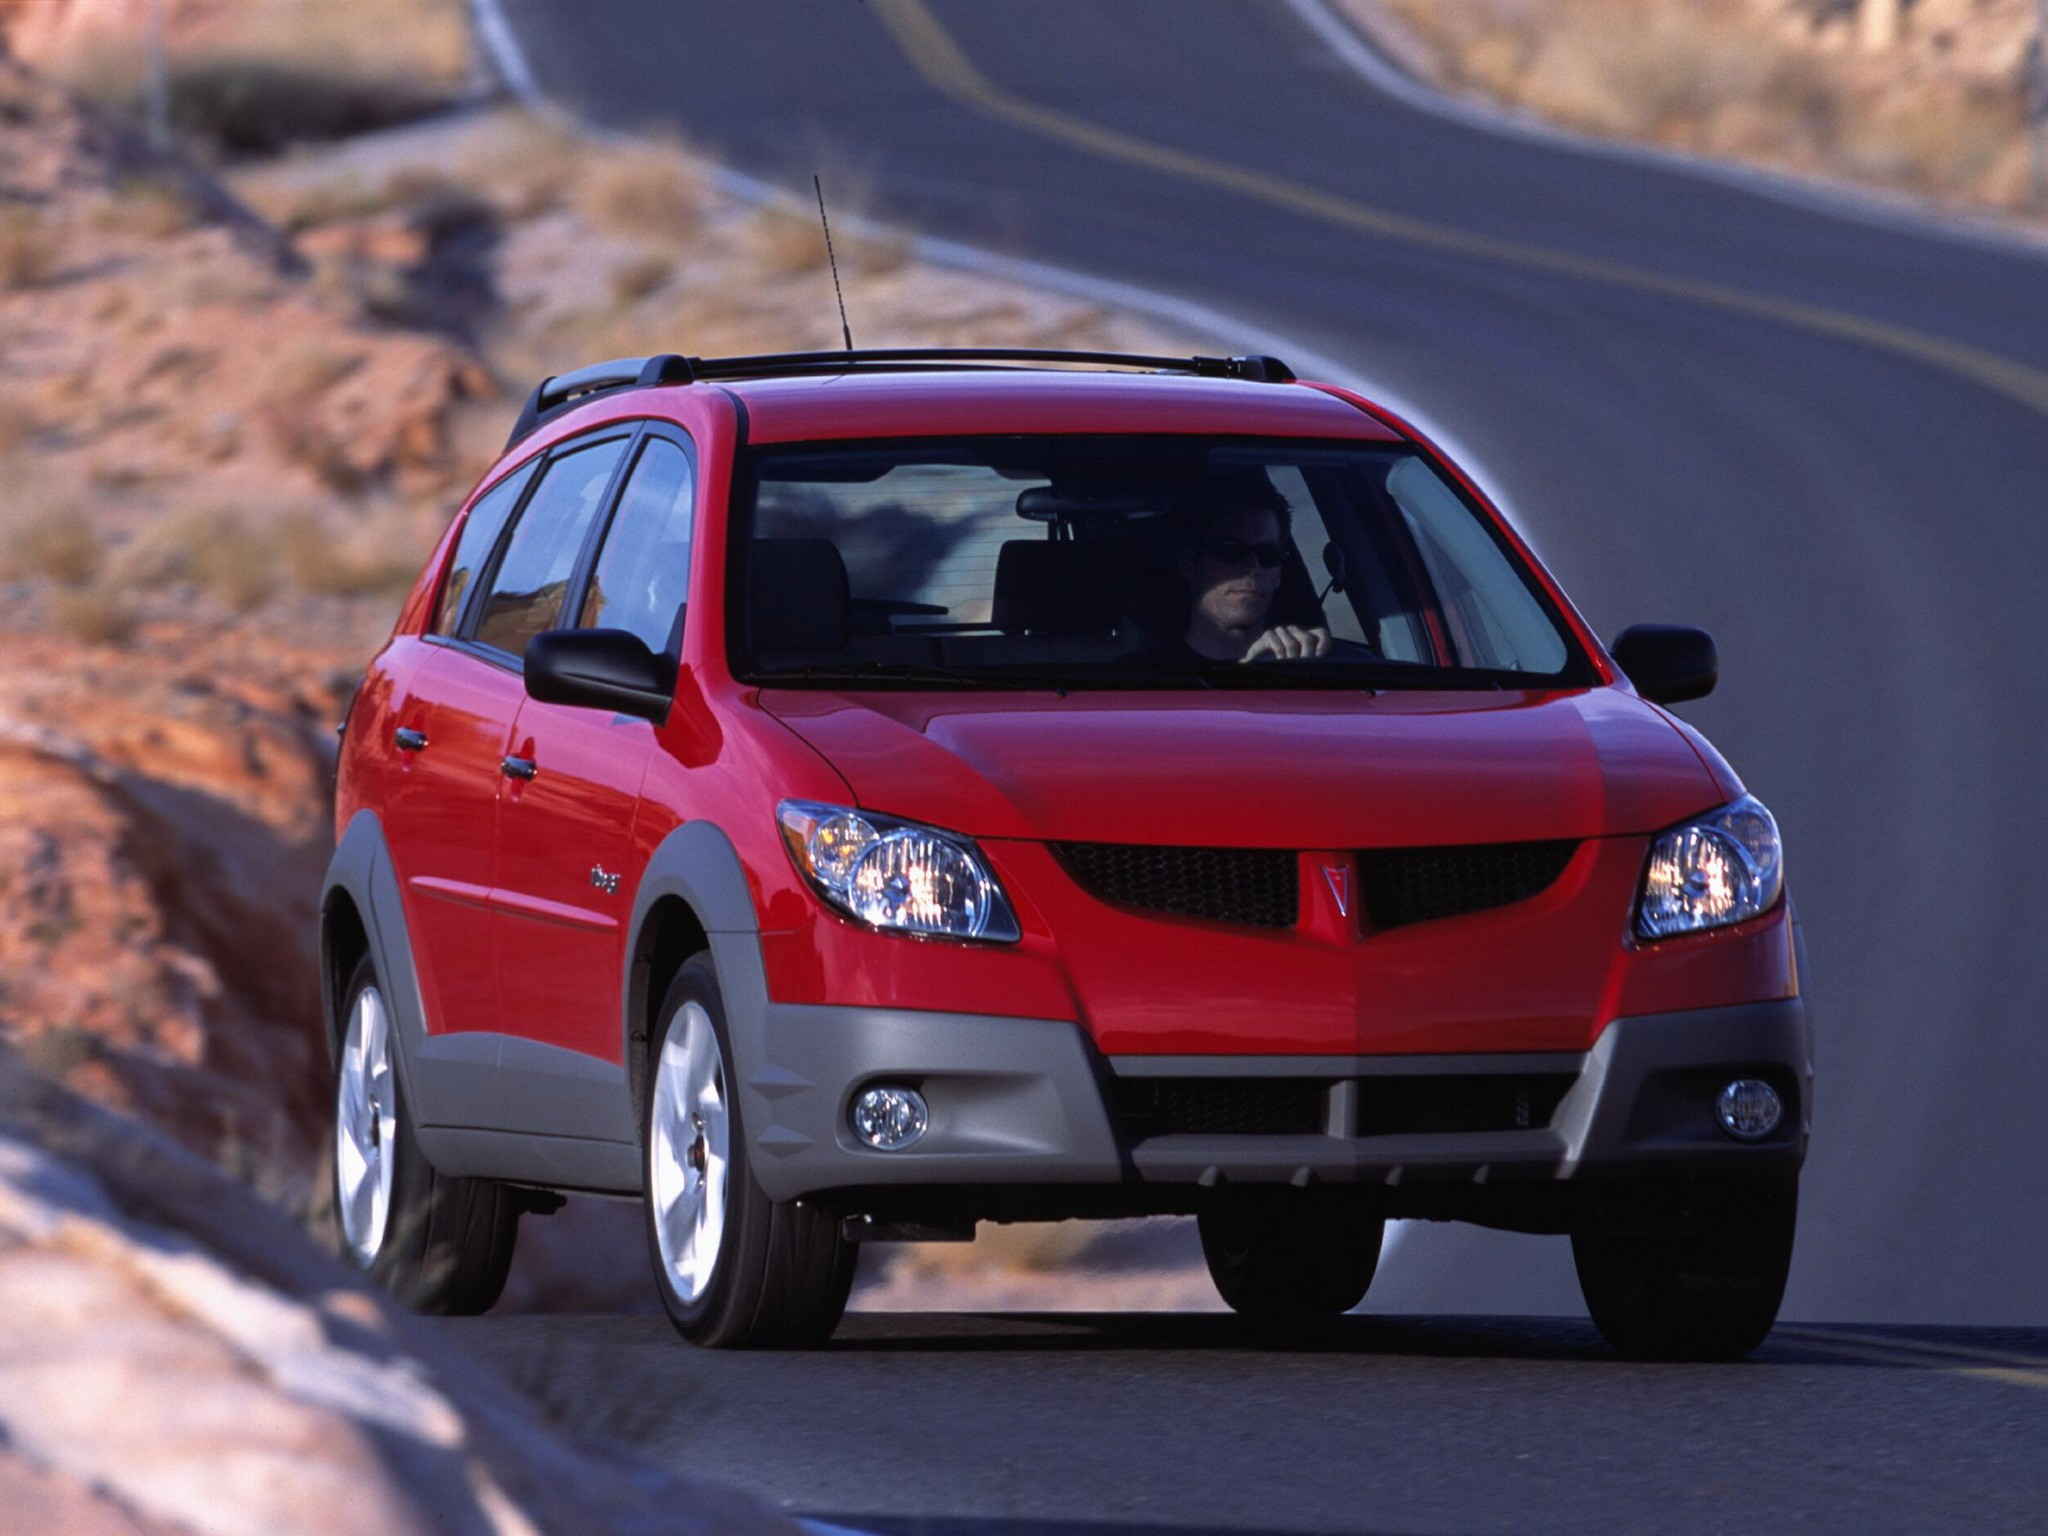 Pontiac Vibe Hatchback (1 generation) 1.8 MT (132 HP) photo, Pontiac Vibe Hatchback (1 generation) 1.8 MT (132 HP) photos, Pontiac Vibe Hatchback (1 generation) 1.8 MT (132 HP) picture, Pontiac Vibe Hatchback (1 generation) 1.8 MT (132 HP) pictures, Pontiac photos, Pontiac pictures, image Pontiac, Pontiac images